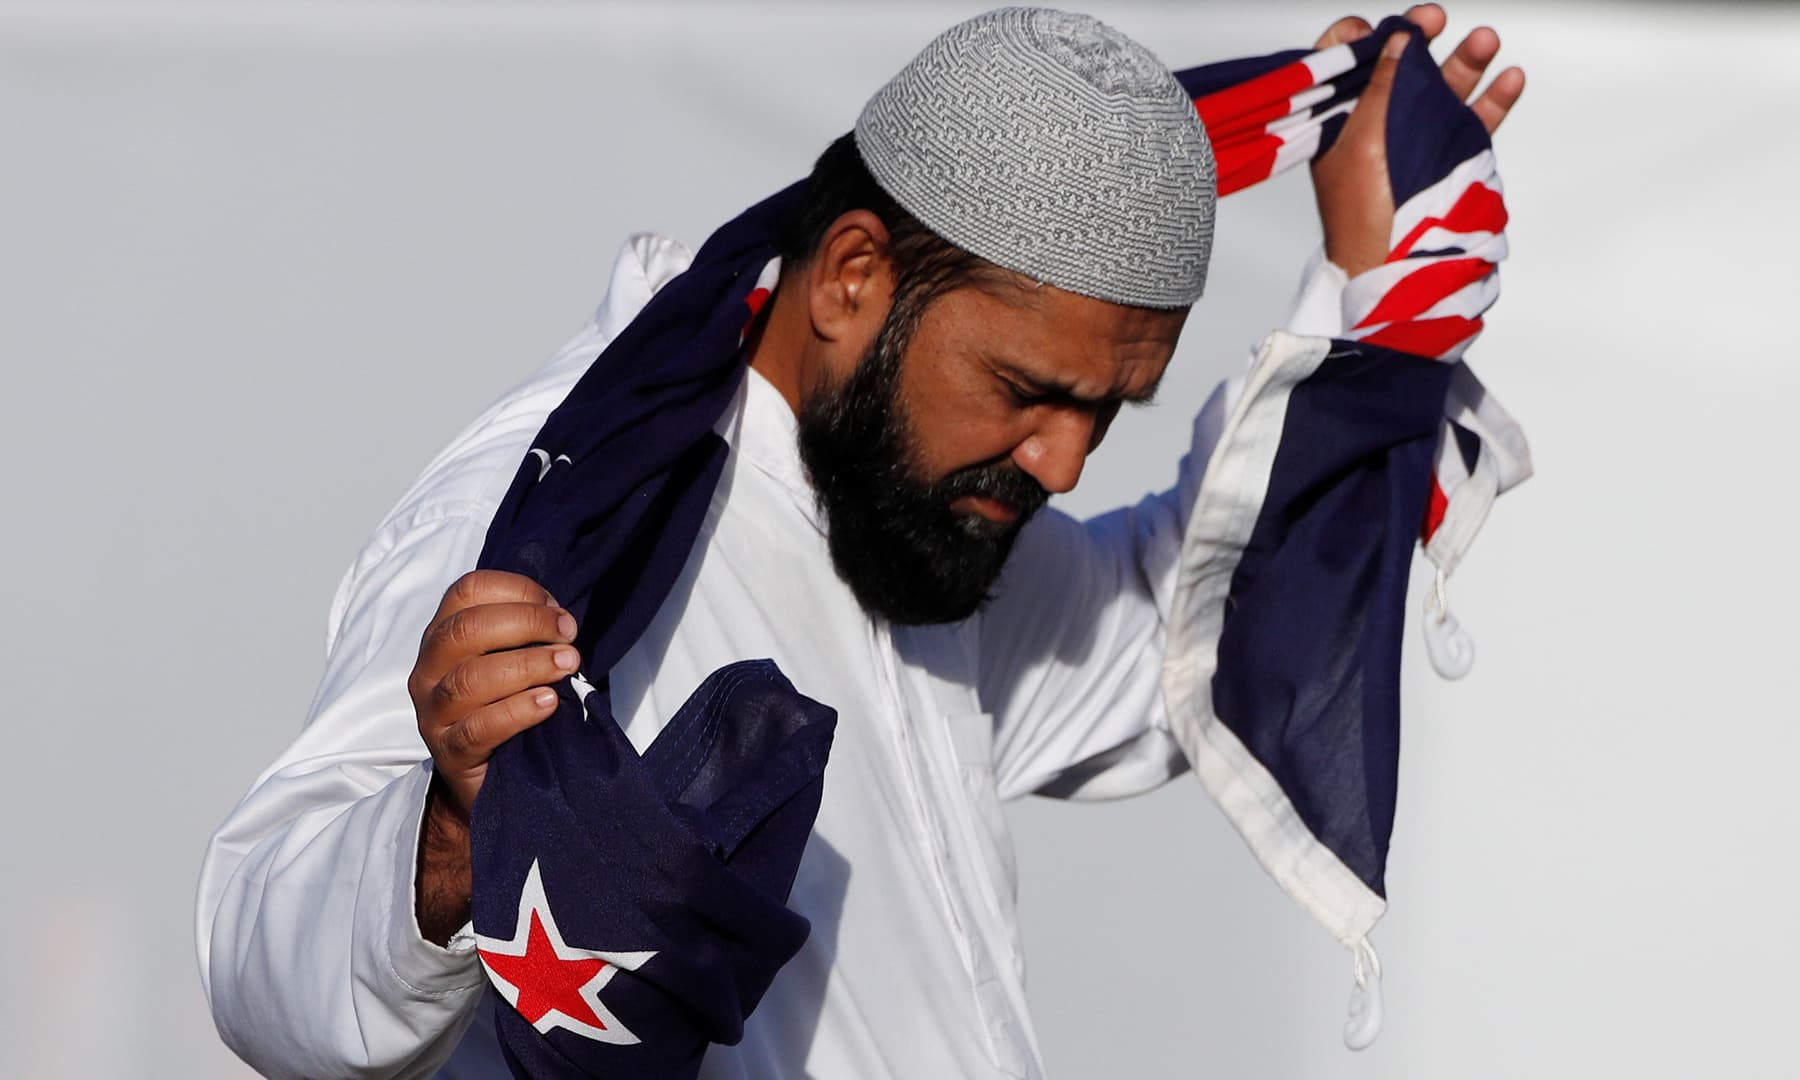 A man holding a New Zealand flag reacts during a burial ceremony for victims of the mosque attacks, at the Memorial Park Cemetery in Christchurch. — Reuters